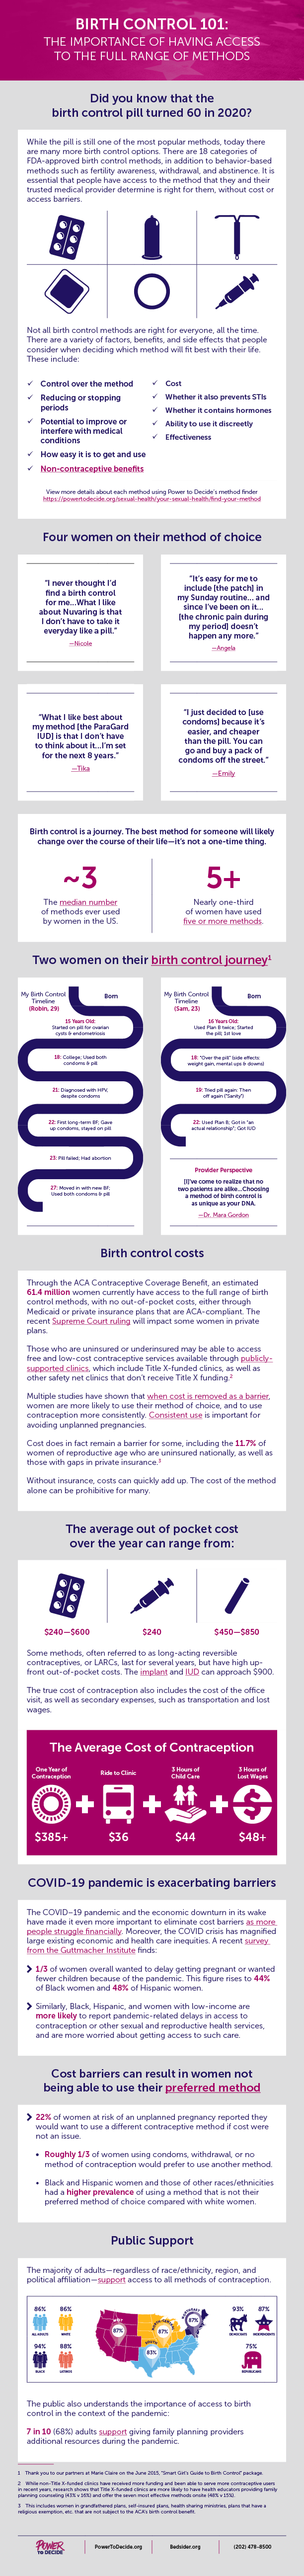 The entire infographic, which details the importance of having access to the full range of contraceptive methods.